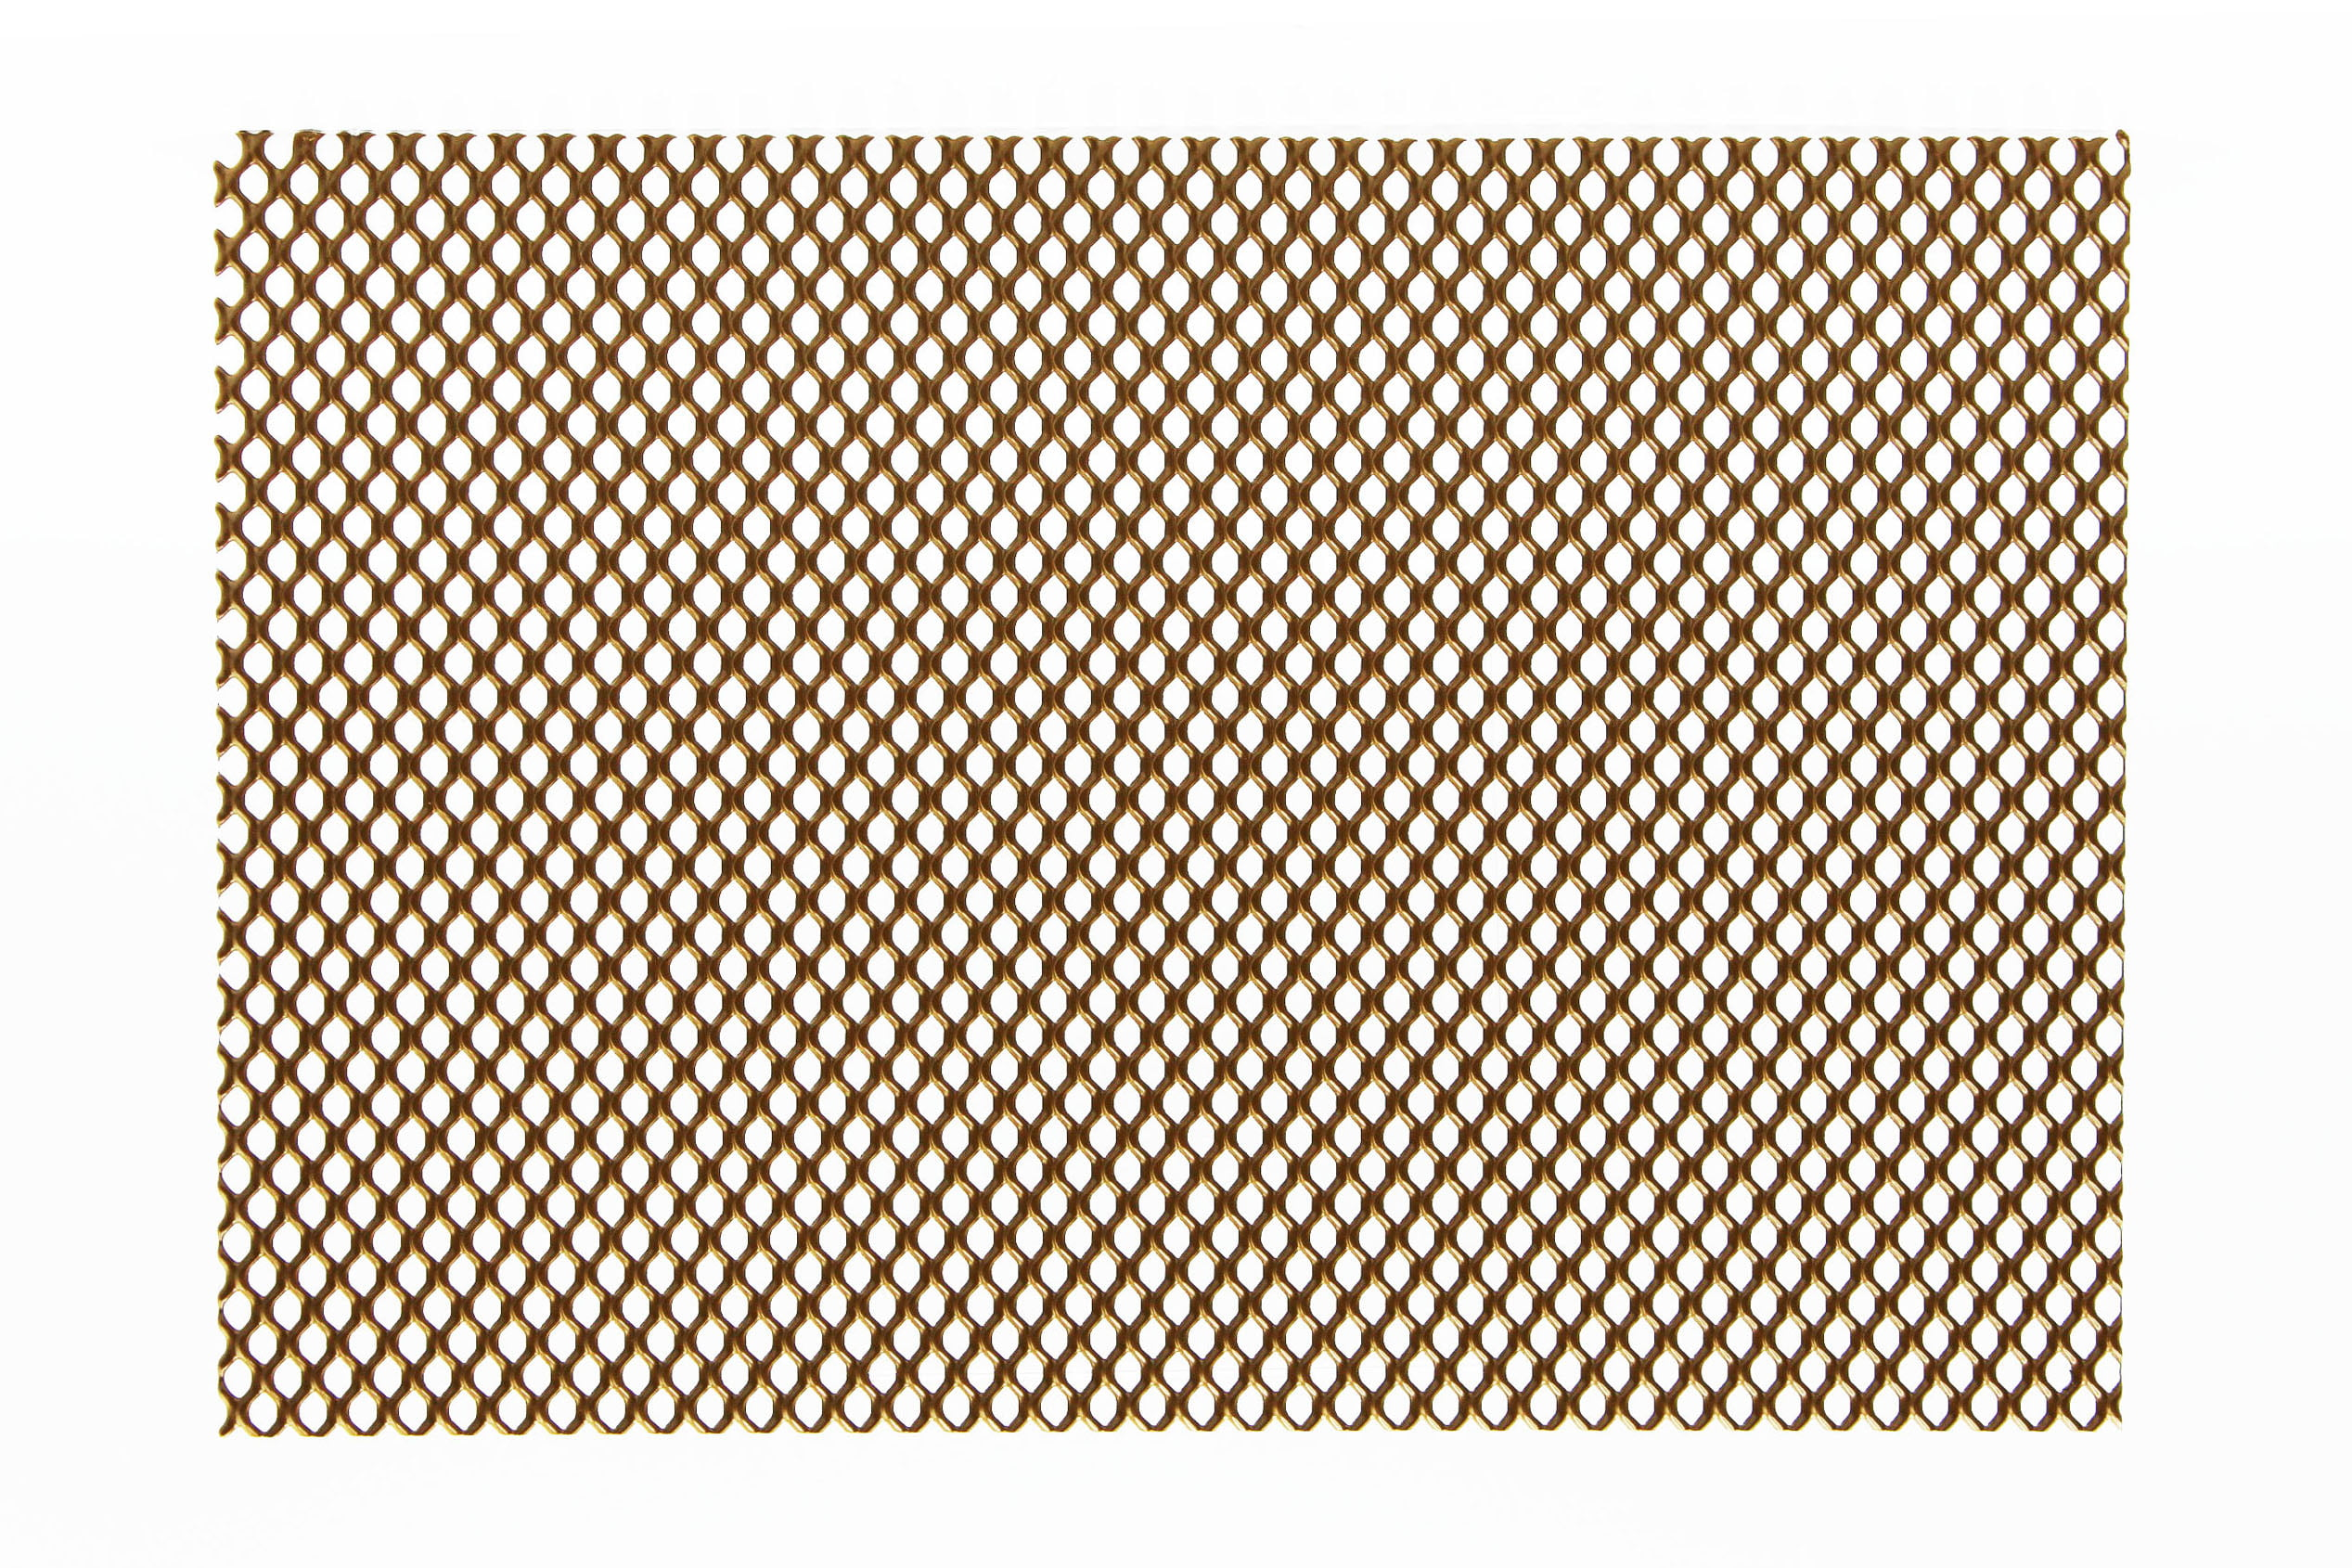 chelsea gold expanded architectural mesh